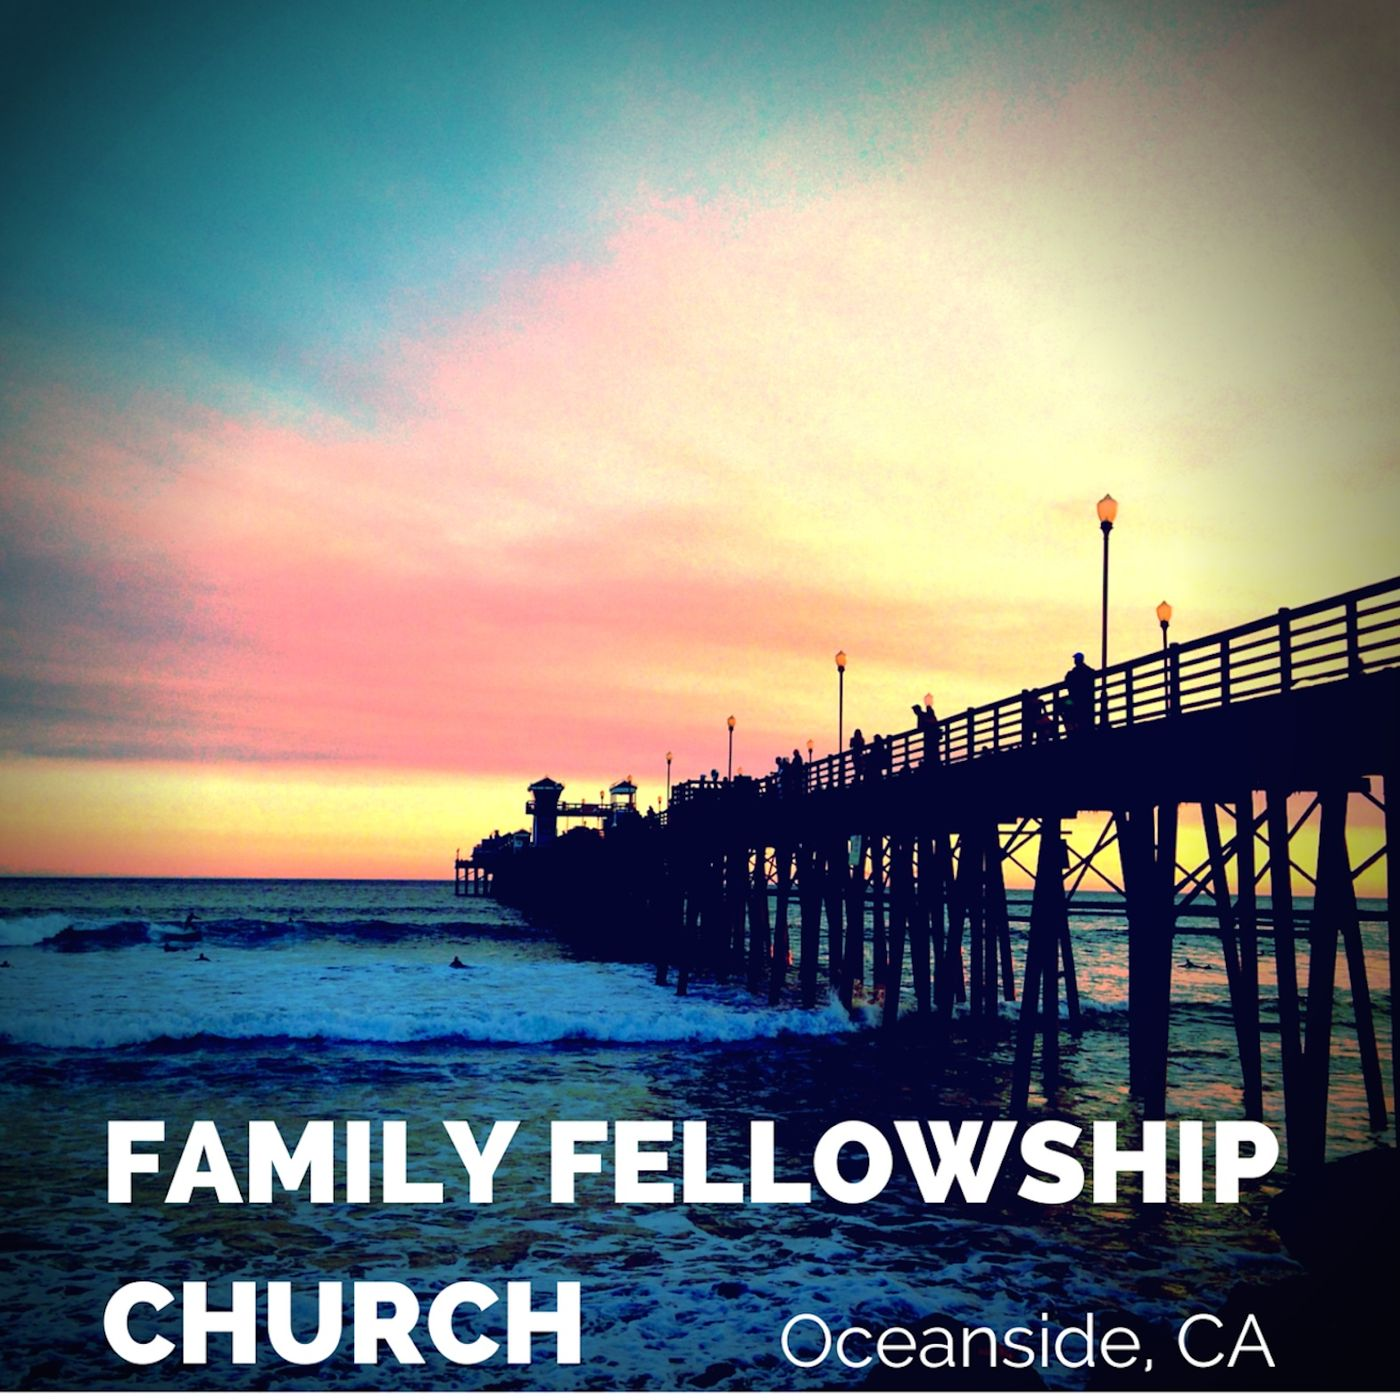 Family Fellowship Church